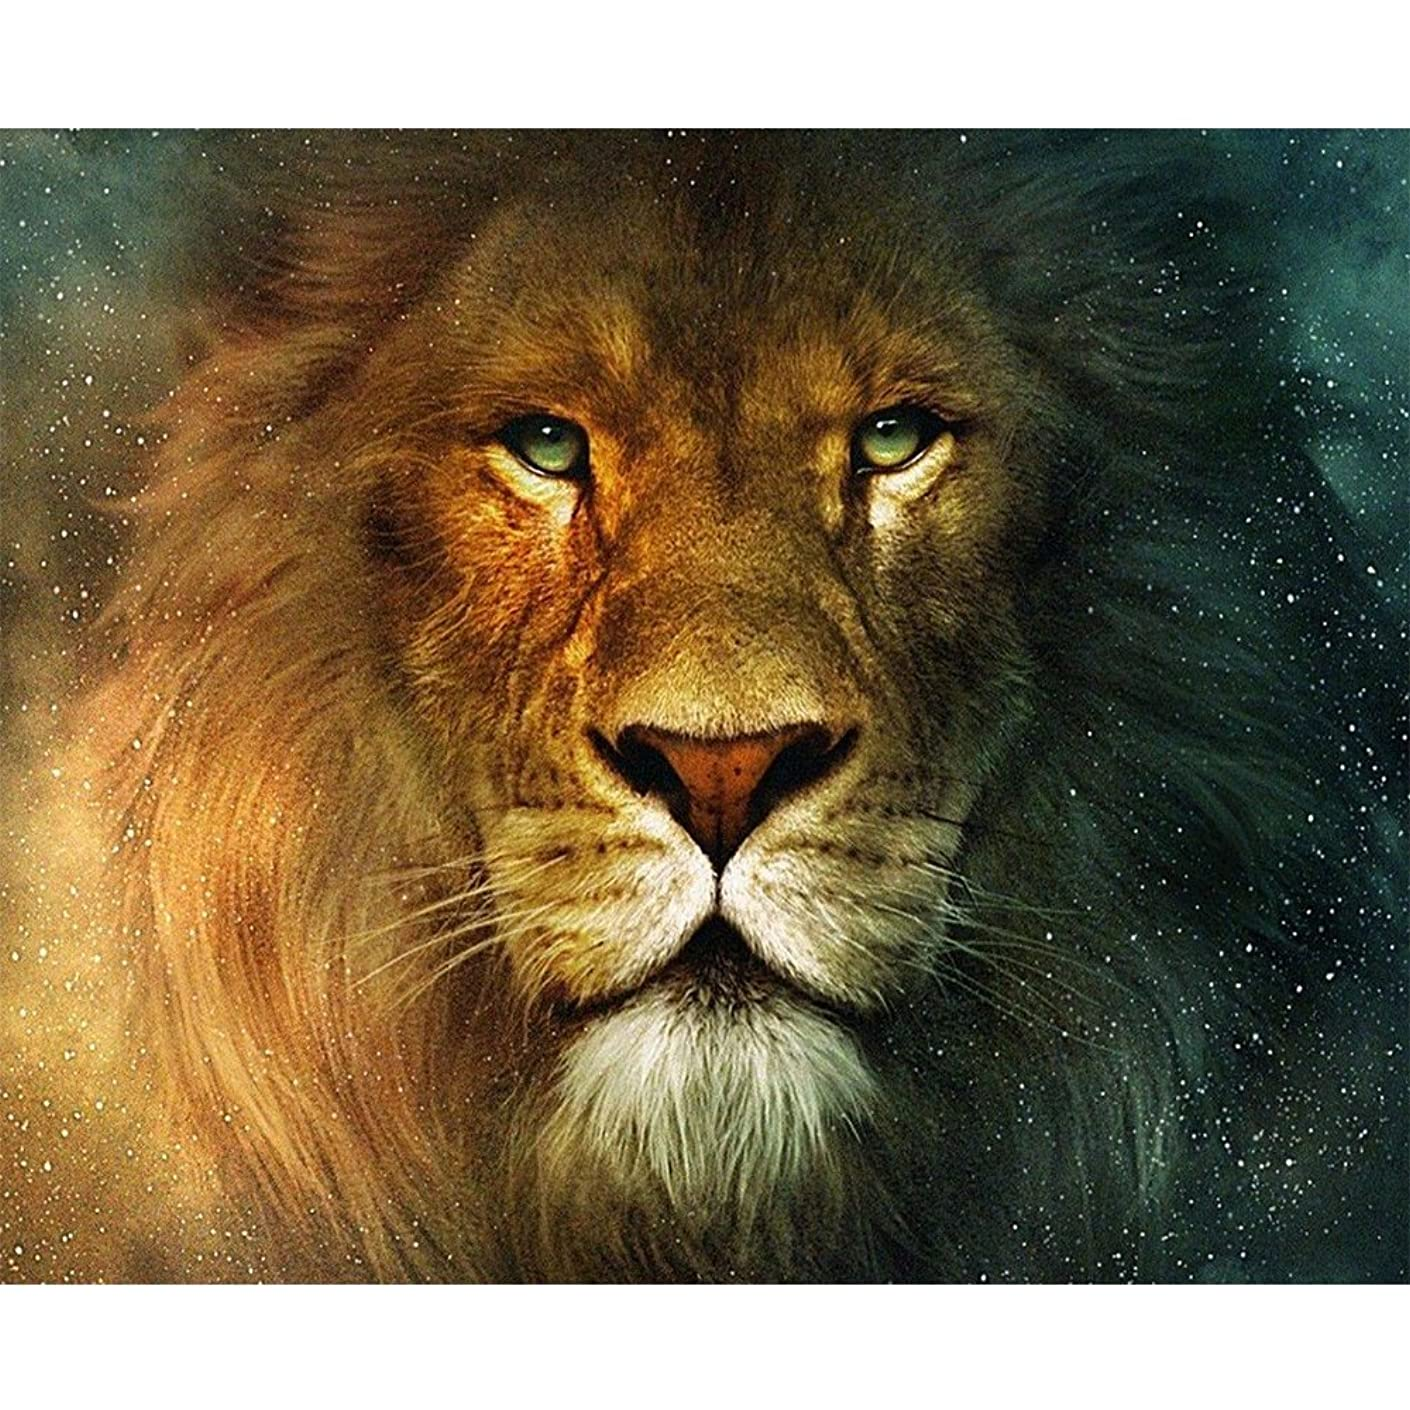 Blxecky 5D DIY Diamond Painting ,By Number Kits Crafts & Sewing Cross Stitch,Wall stickers for living room decoration,lion(16X12inch/40X30CM)